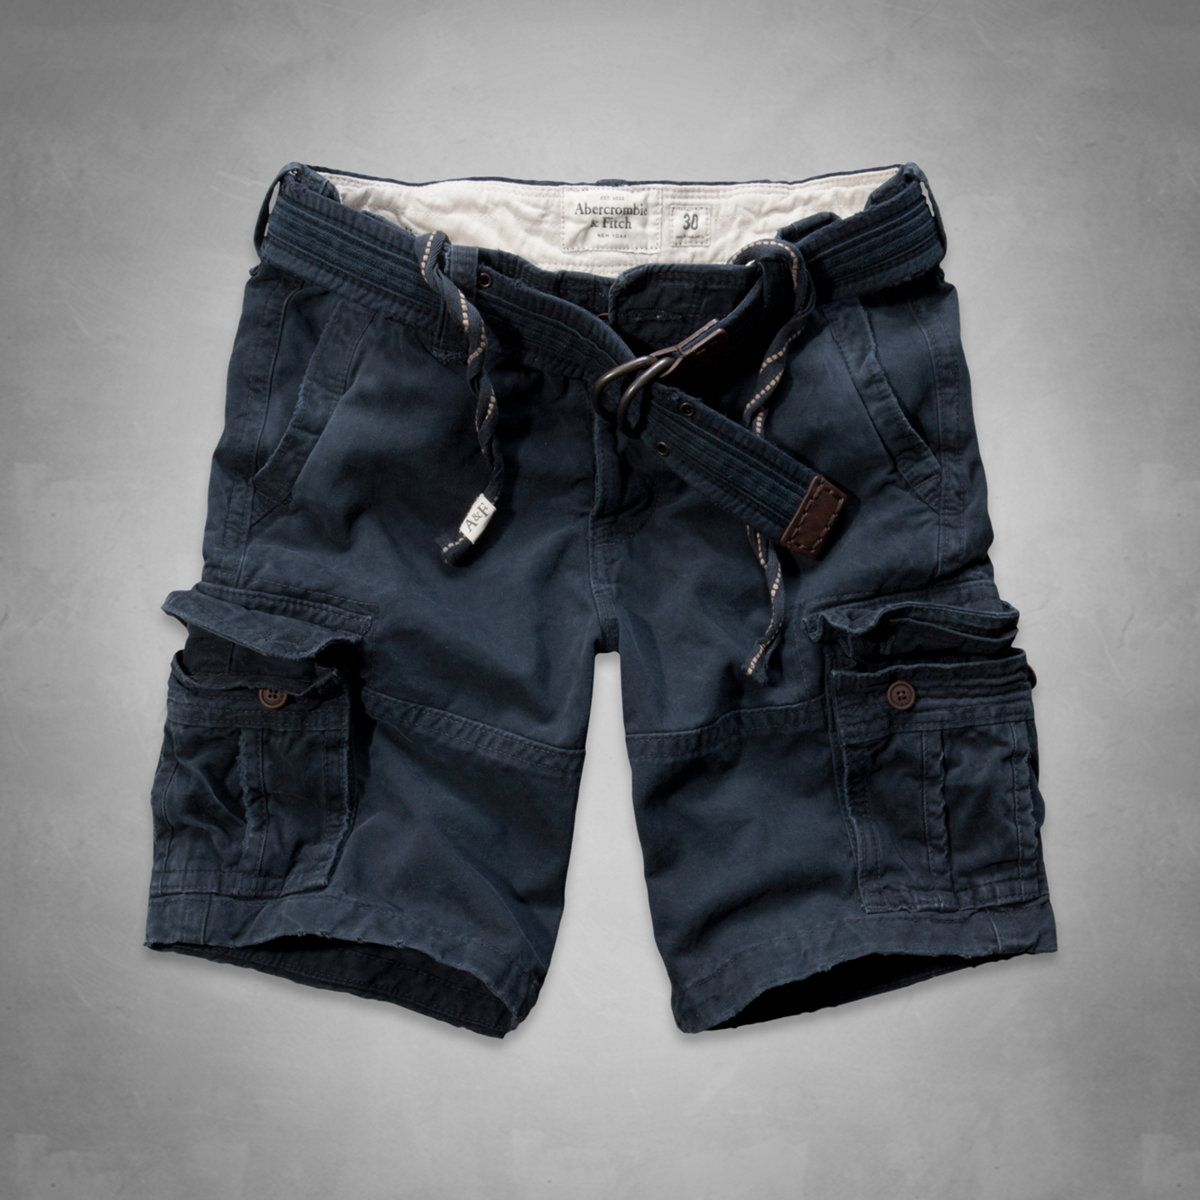 Mens A&F Cargo Shorts | Mens Shorts | Abercrombie.com | Stuff to ...